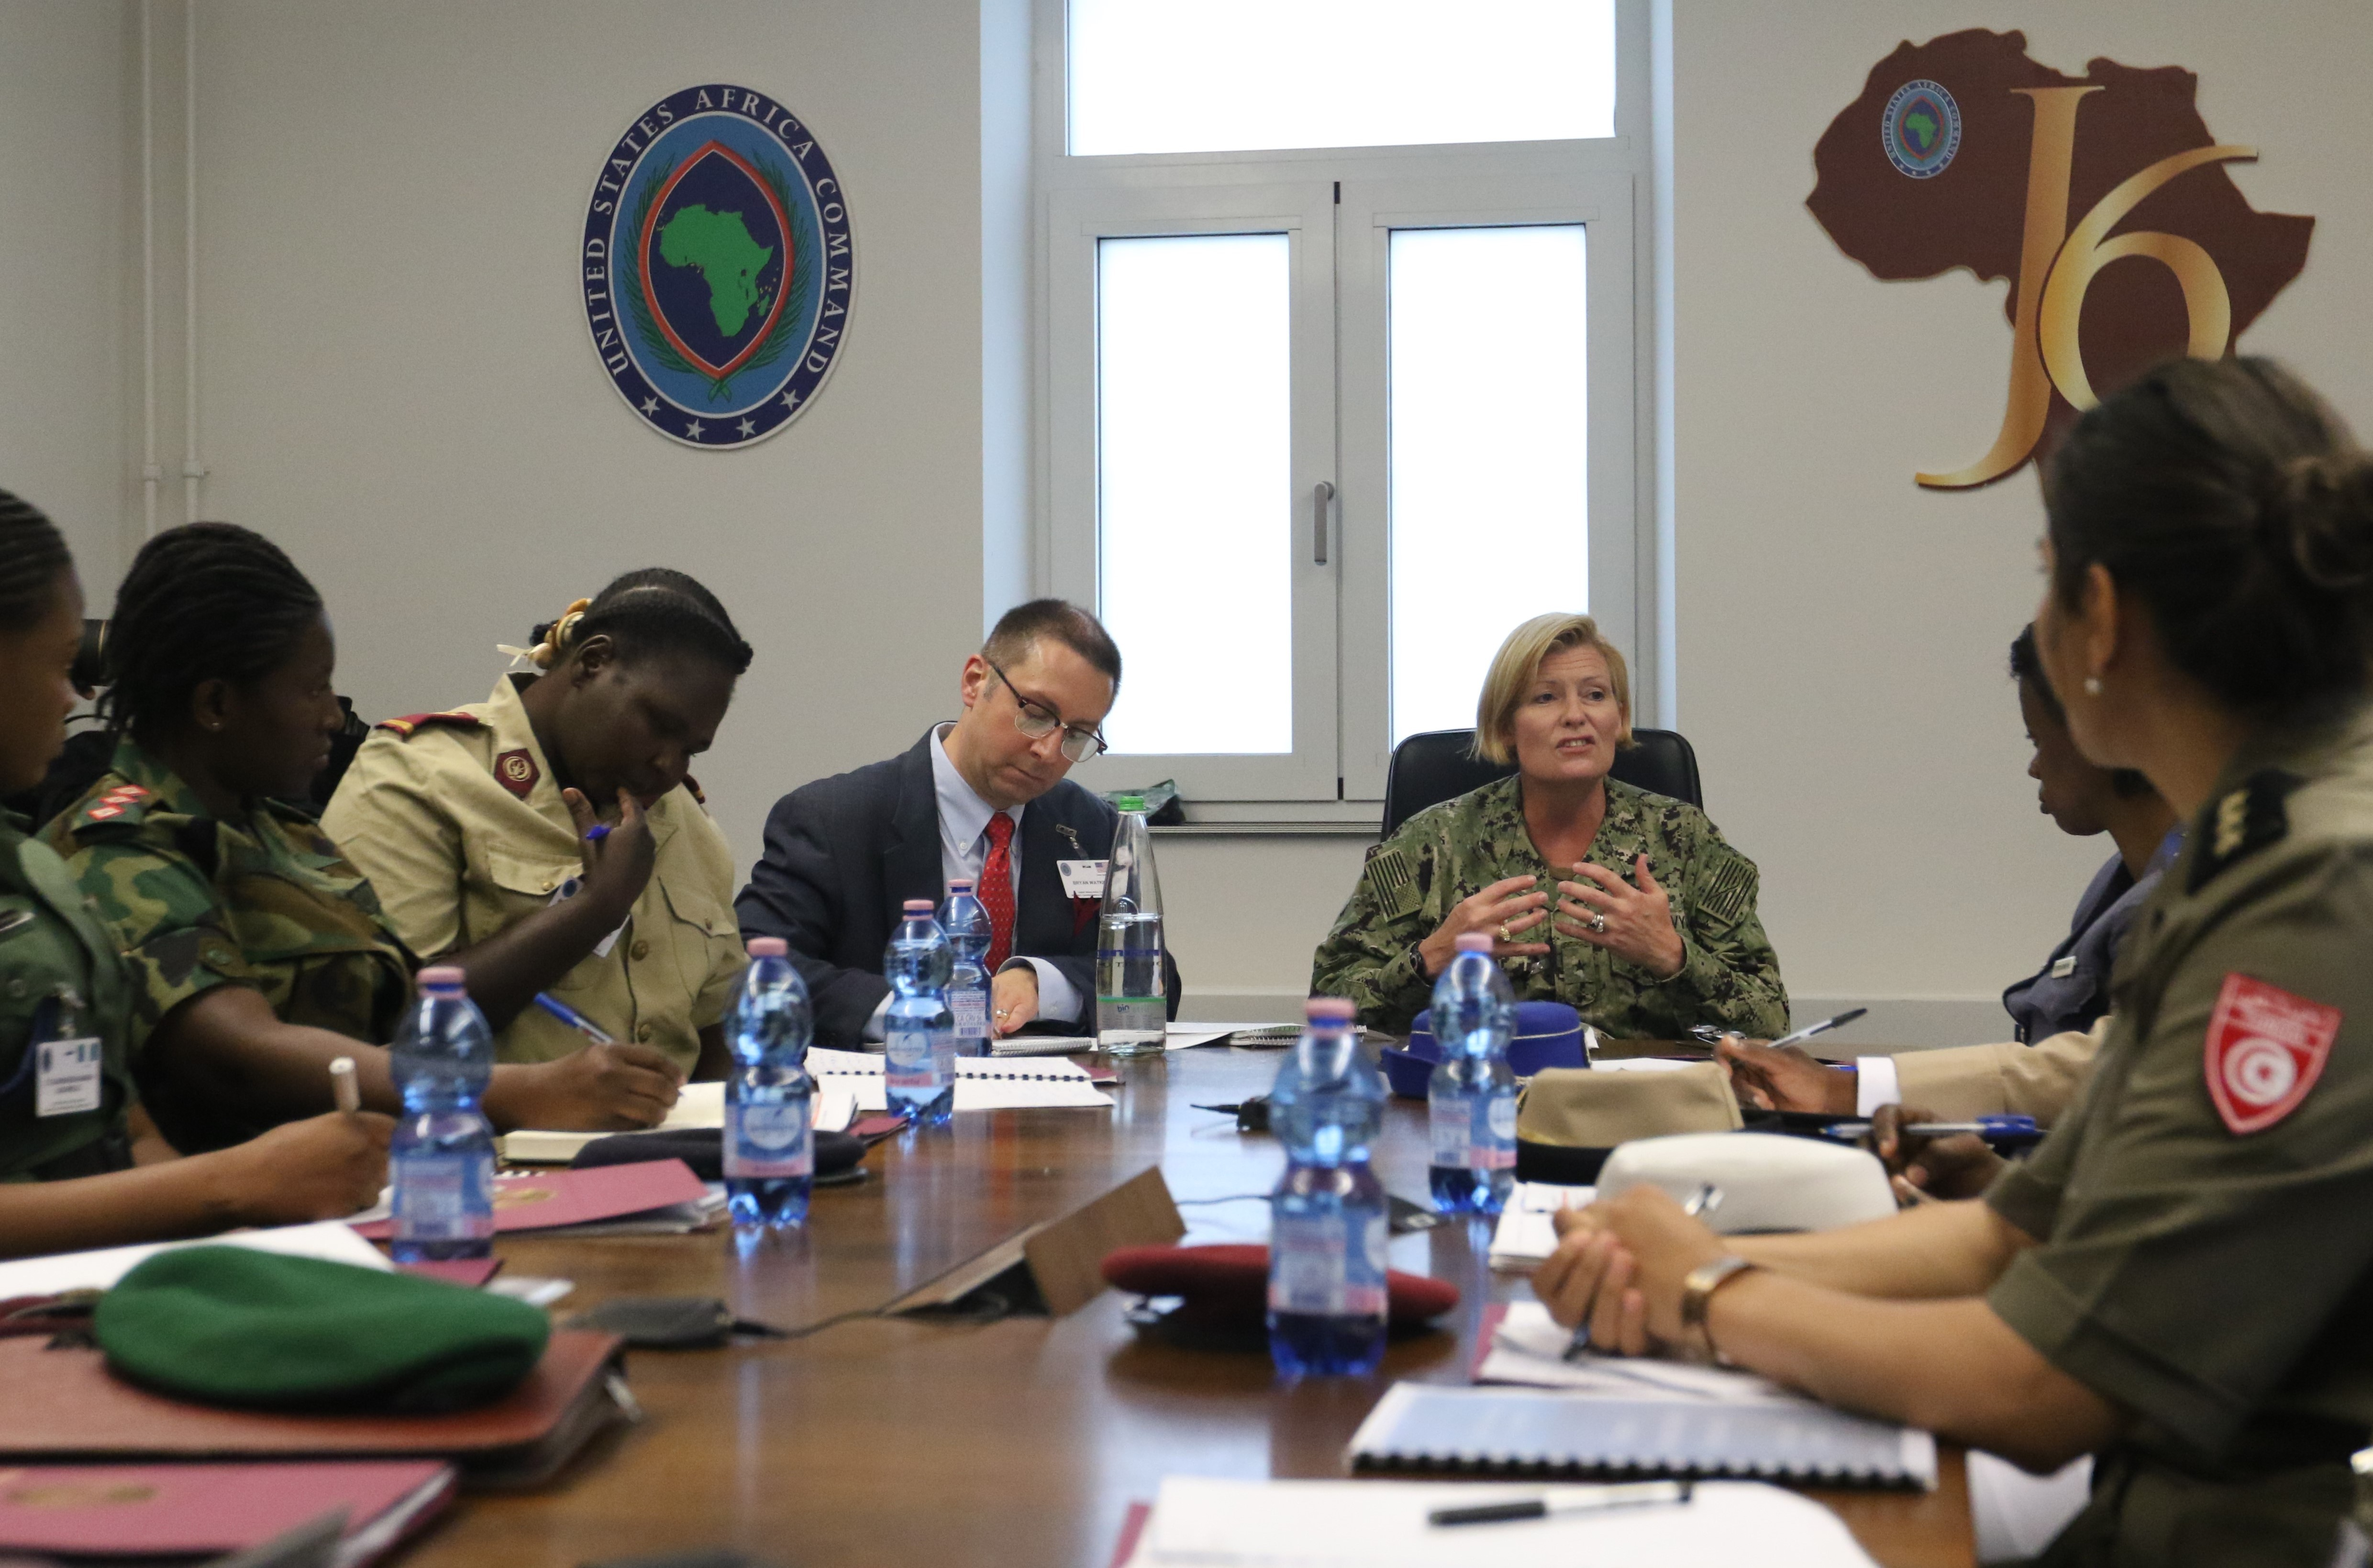 Rear Adm. Heidi Berg, Director of Intelligence-J2, U.S. Africa Command, speaks to the participants of the AFRICOM Women's Communication Symposium, at Kelly Barracks, Stuttgart, Germany, July 29, 2019.